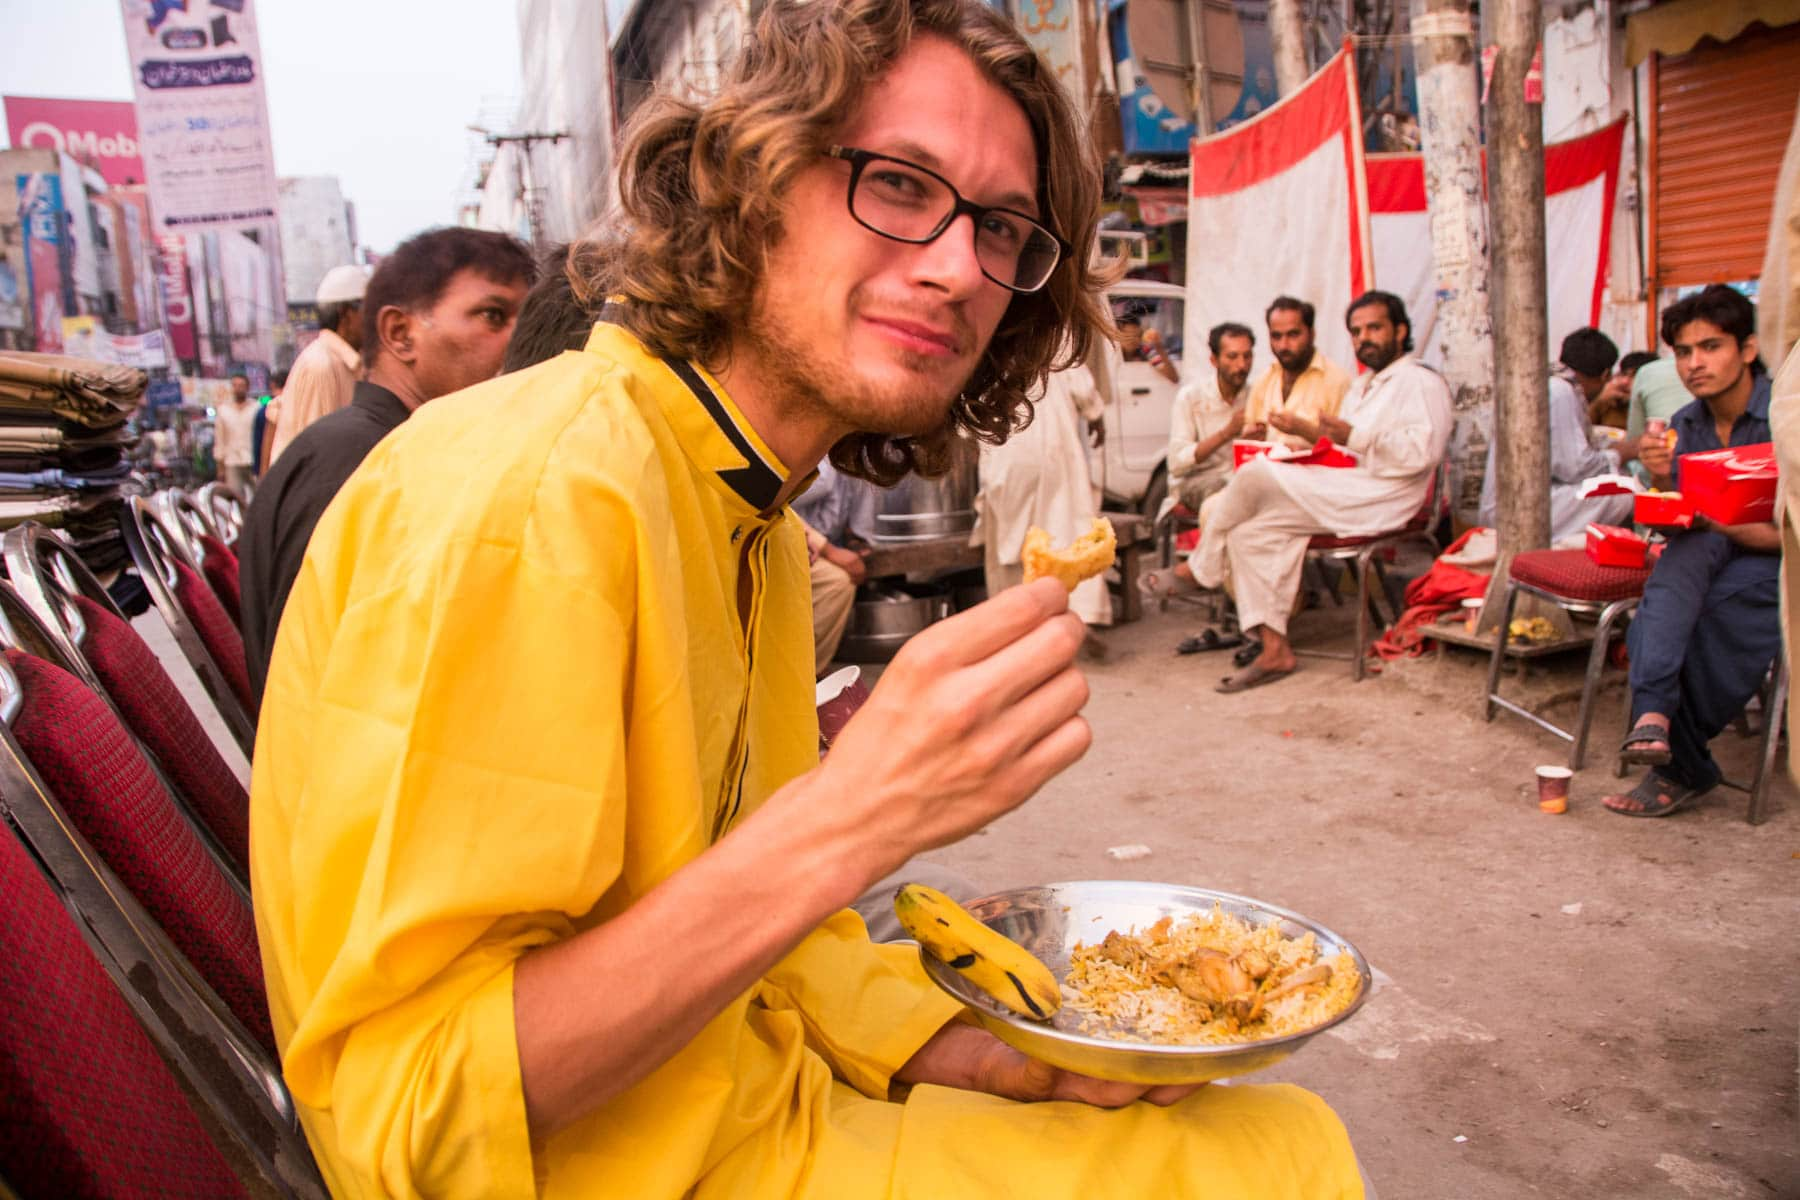 Sebastiaan living tales of Pakistani hospitality as he devours iftar food on the road in Lahore